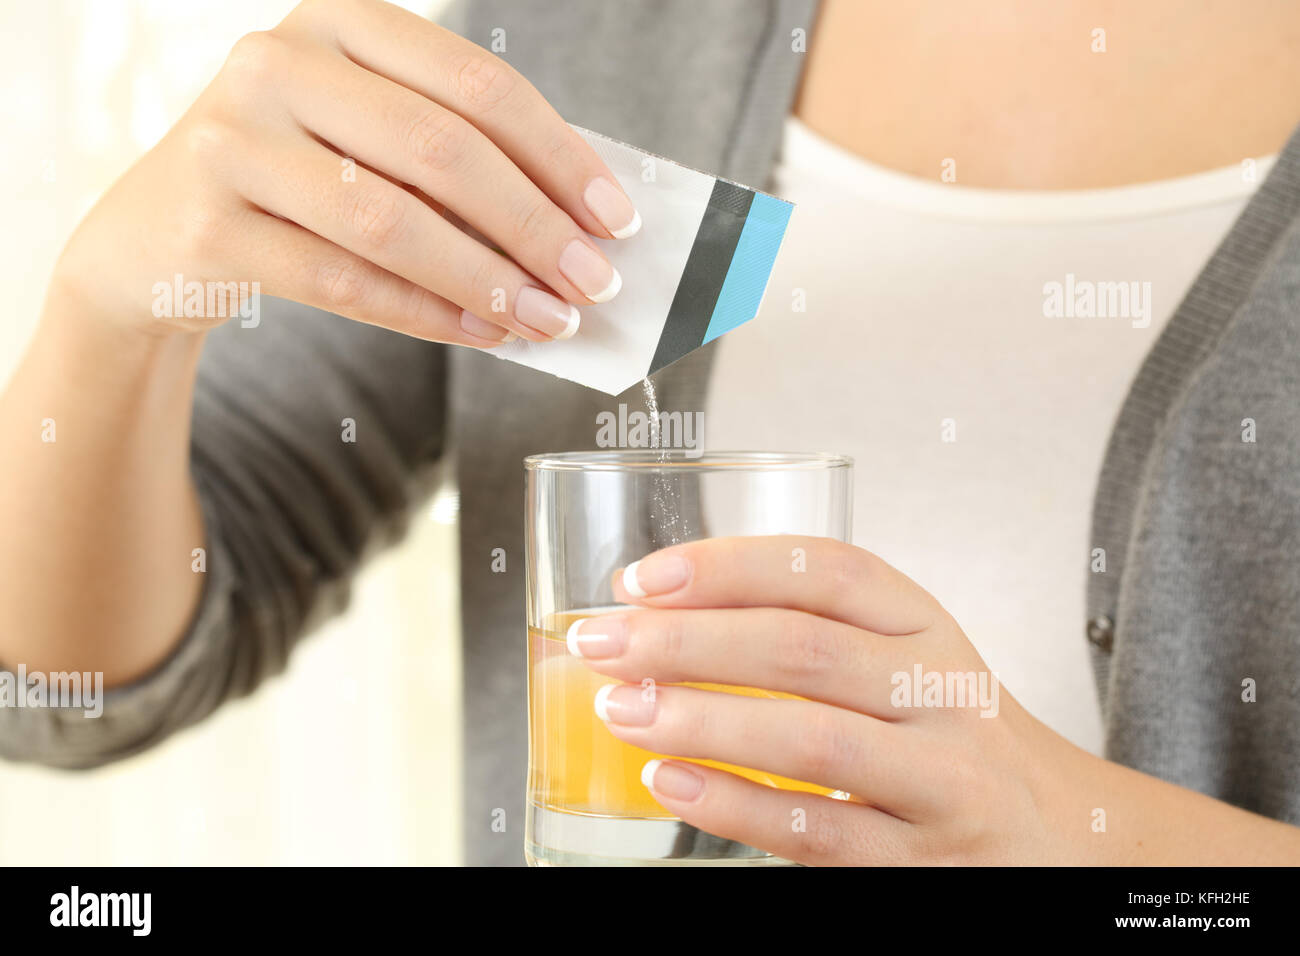 Close up of a woman preparing a mucolytic bag medicine on a glass of water - Stock Image